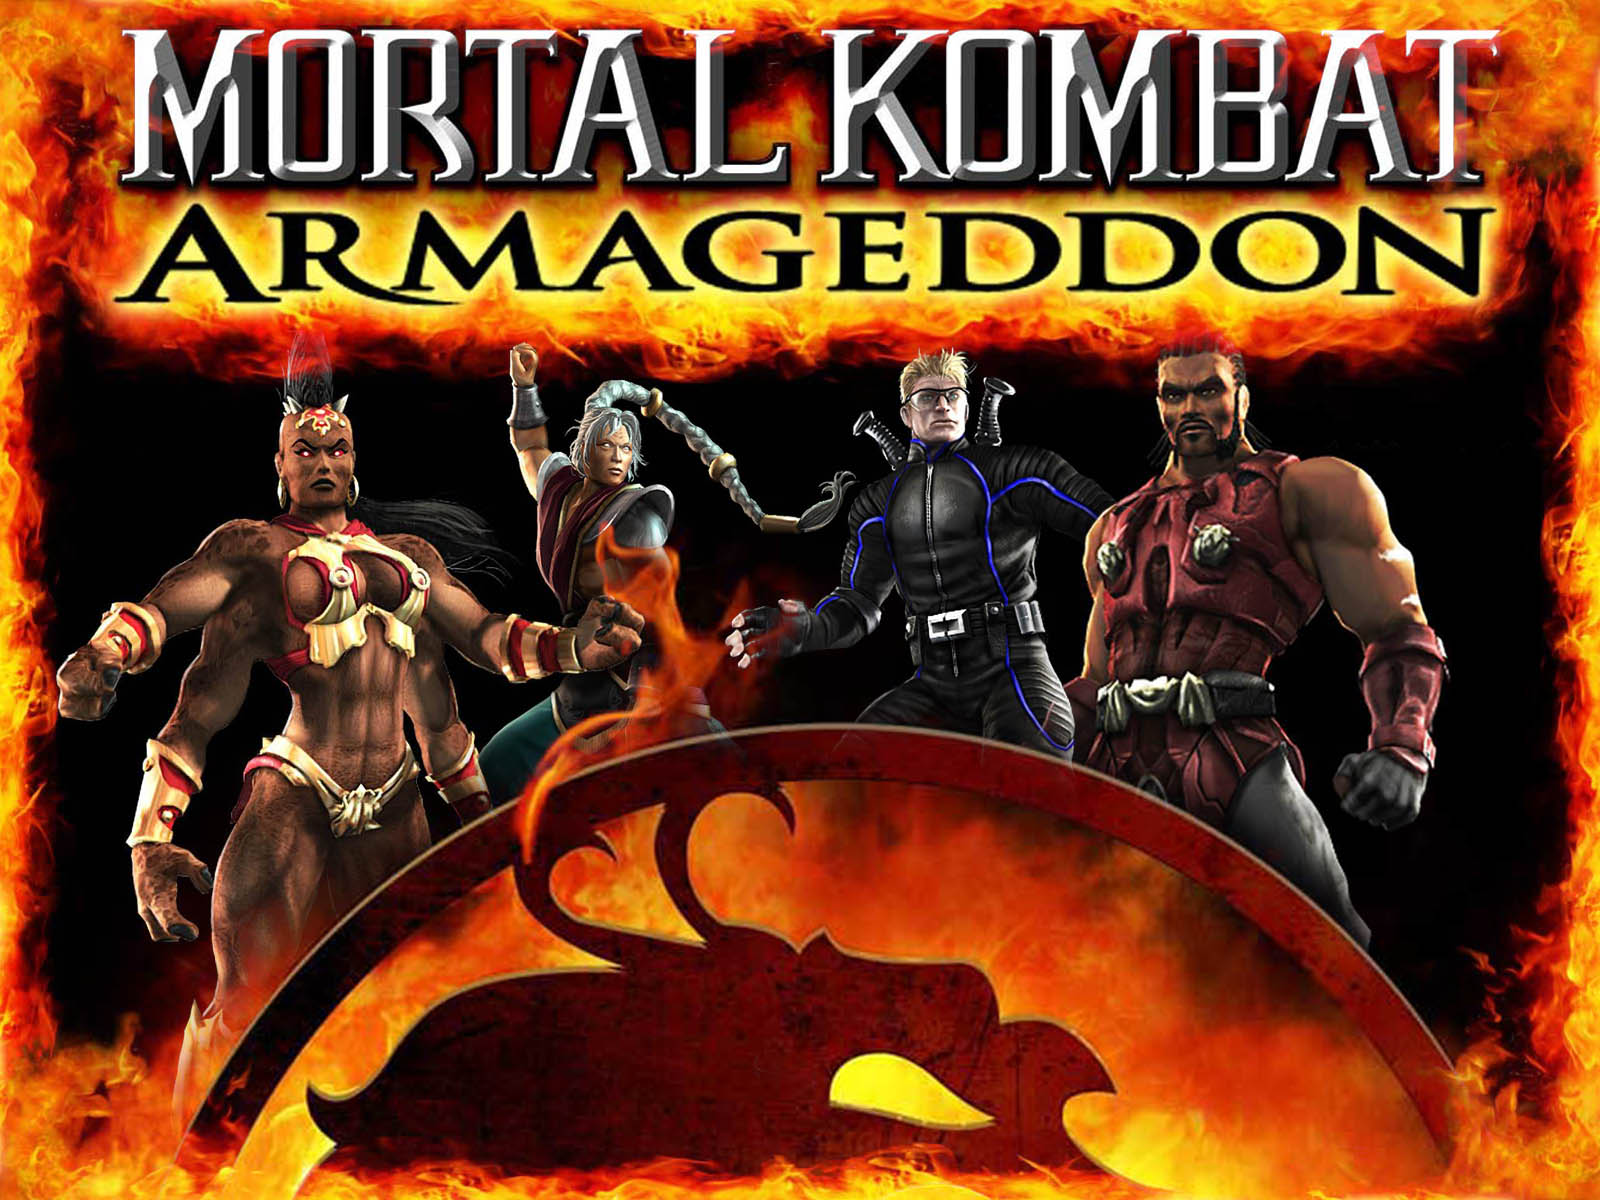 mortal kombat armageddon pc download